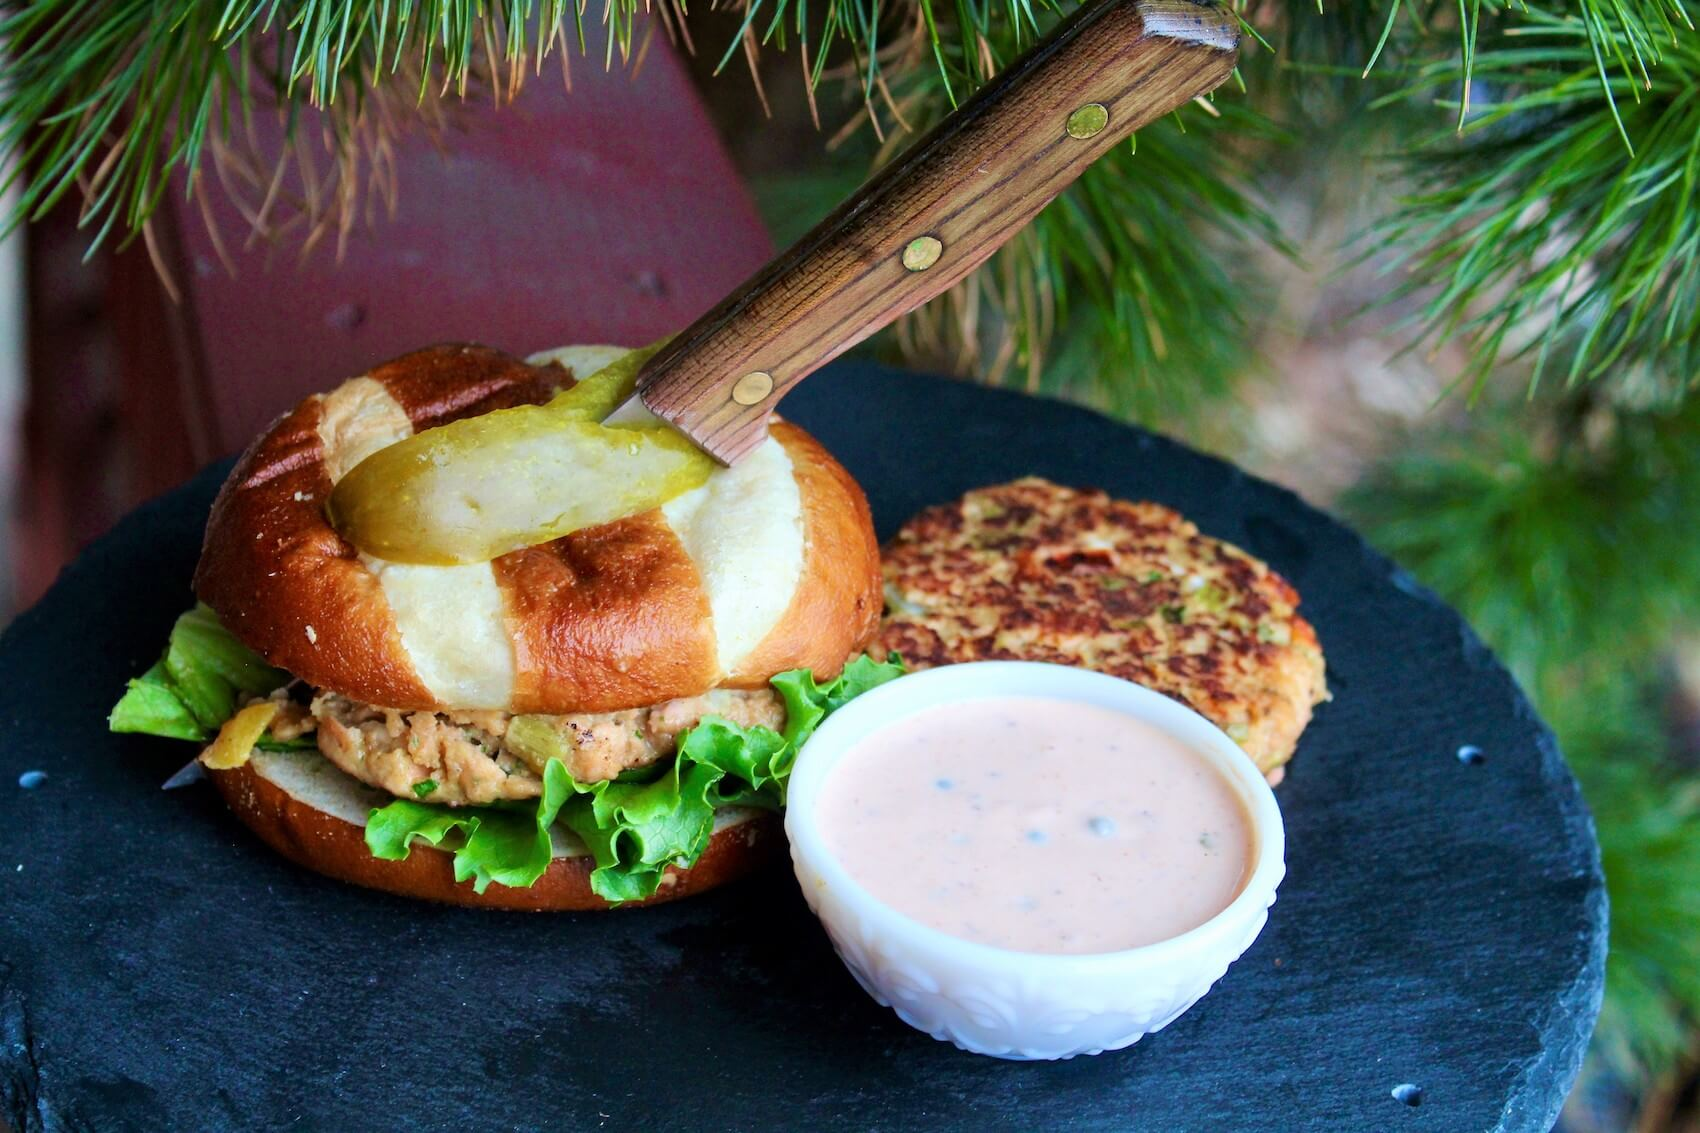 Salmon burger with a pickle slice on top and sauce on the side